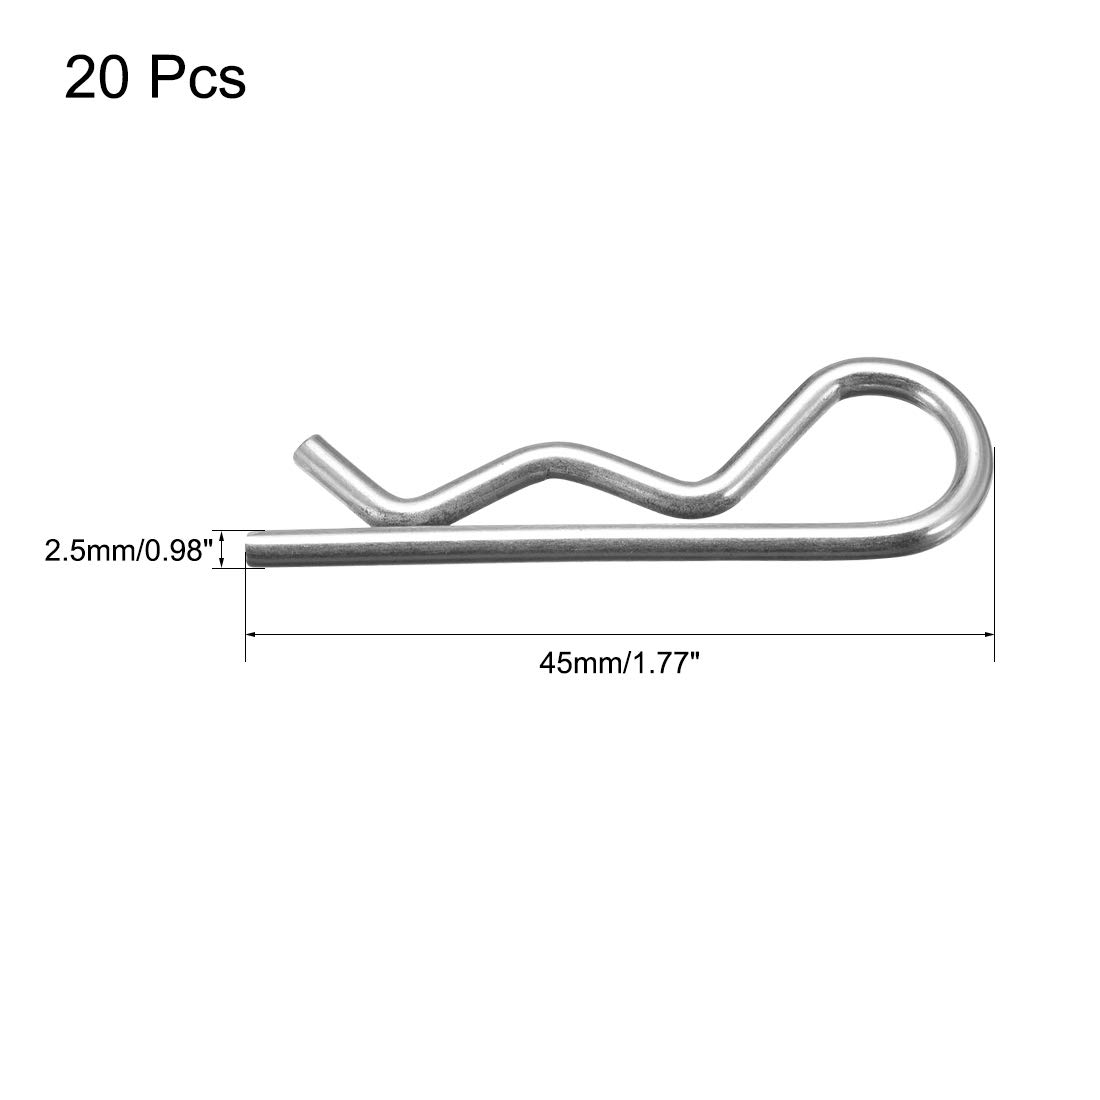 uxcell 3mm x 60mm Carbon Steel R Shaped Spring Cotter Clip Pin Fastener Hardware Silver Tone 50 Pcs